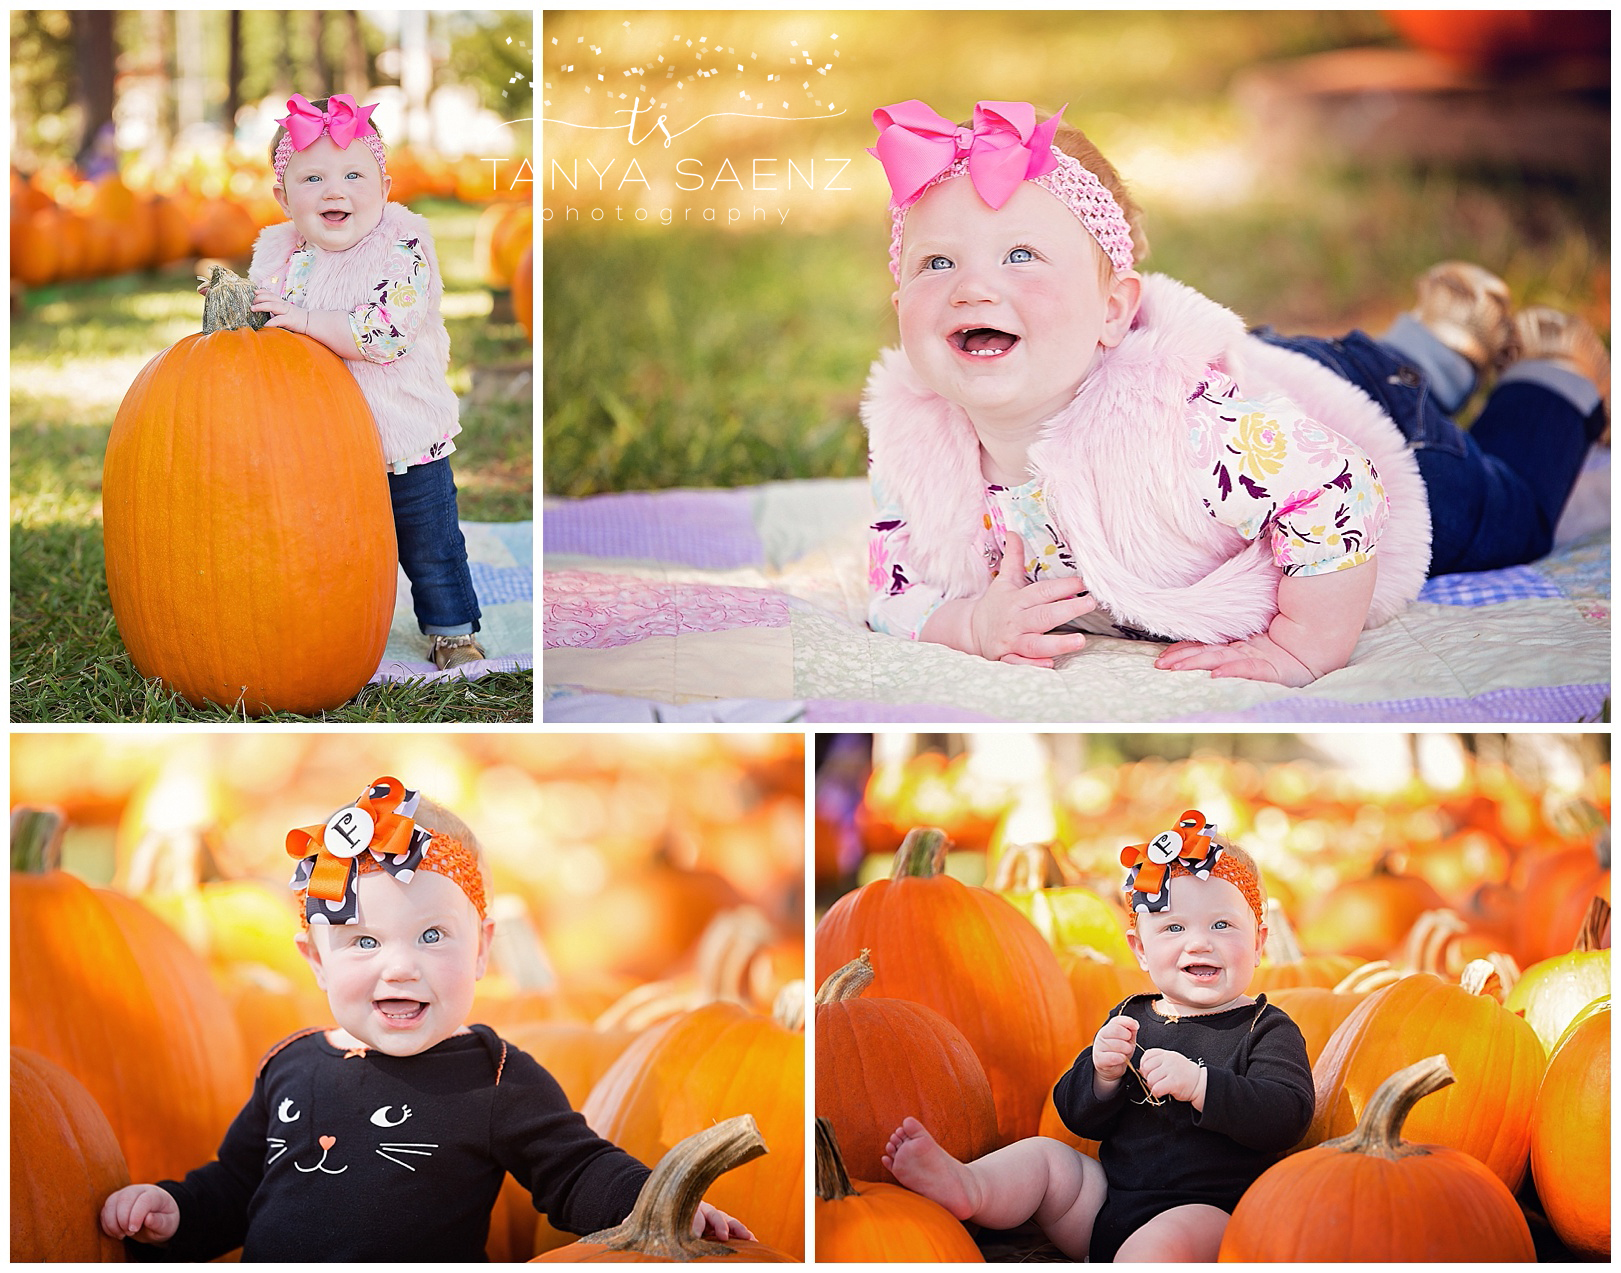 9 month old session at a pumpkin patch